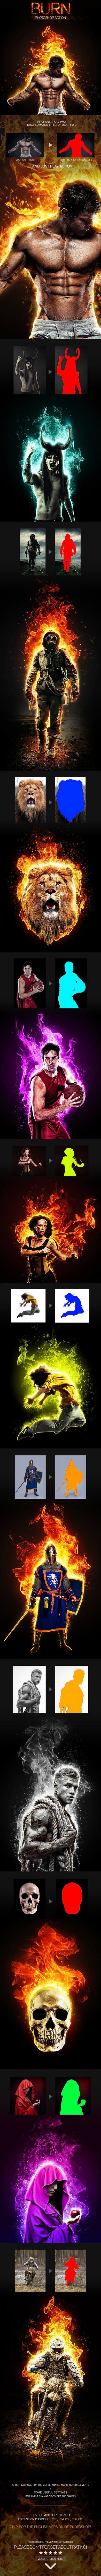 Burn Photoshop Action #action Download: http://graphicriver.net/item/burn-photoshop-action/11462943?ref=ksioks